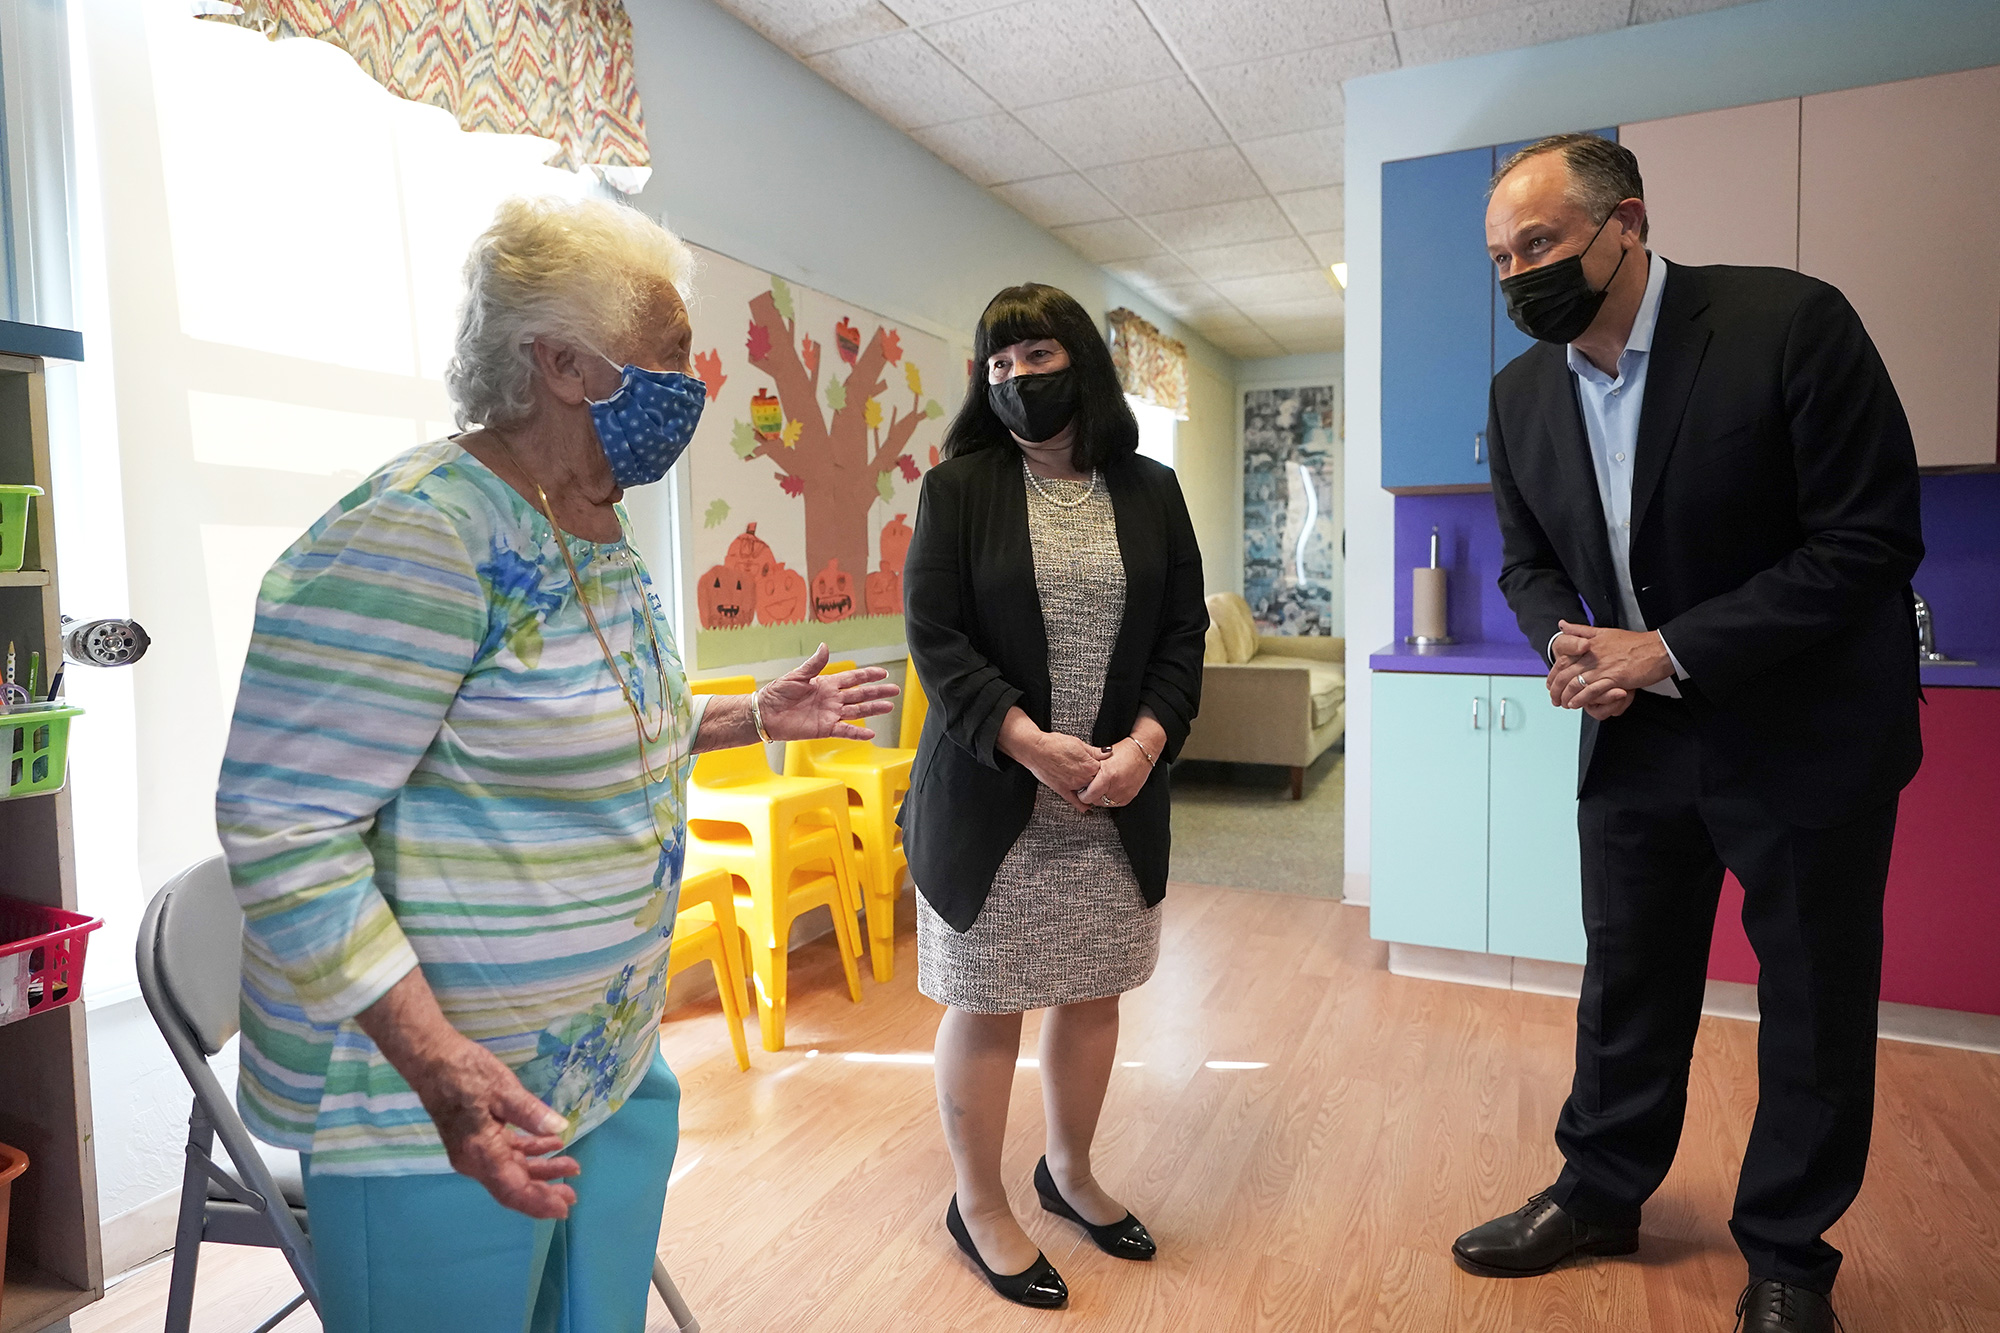 Douglas Emhoff, husband of Vice President Kamala Harris, right, speaks with Mother Hubbard Pre-School Center founder and owner 91-year-old Dorothy Vecchiolla, left, and Director Pamelia White, second from left, during a visit to the child care center, in Milford, Mass. Emhoff visited the child care center to draw attention to the Biden administration's Build Back Better agenda Emhoff Massachusetts, Milford, United